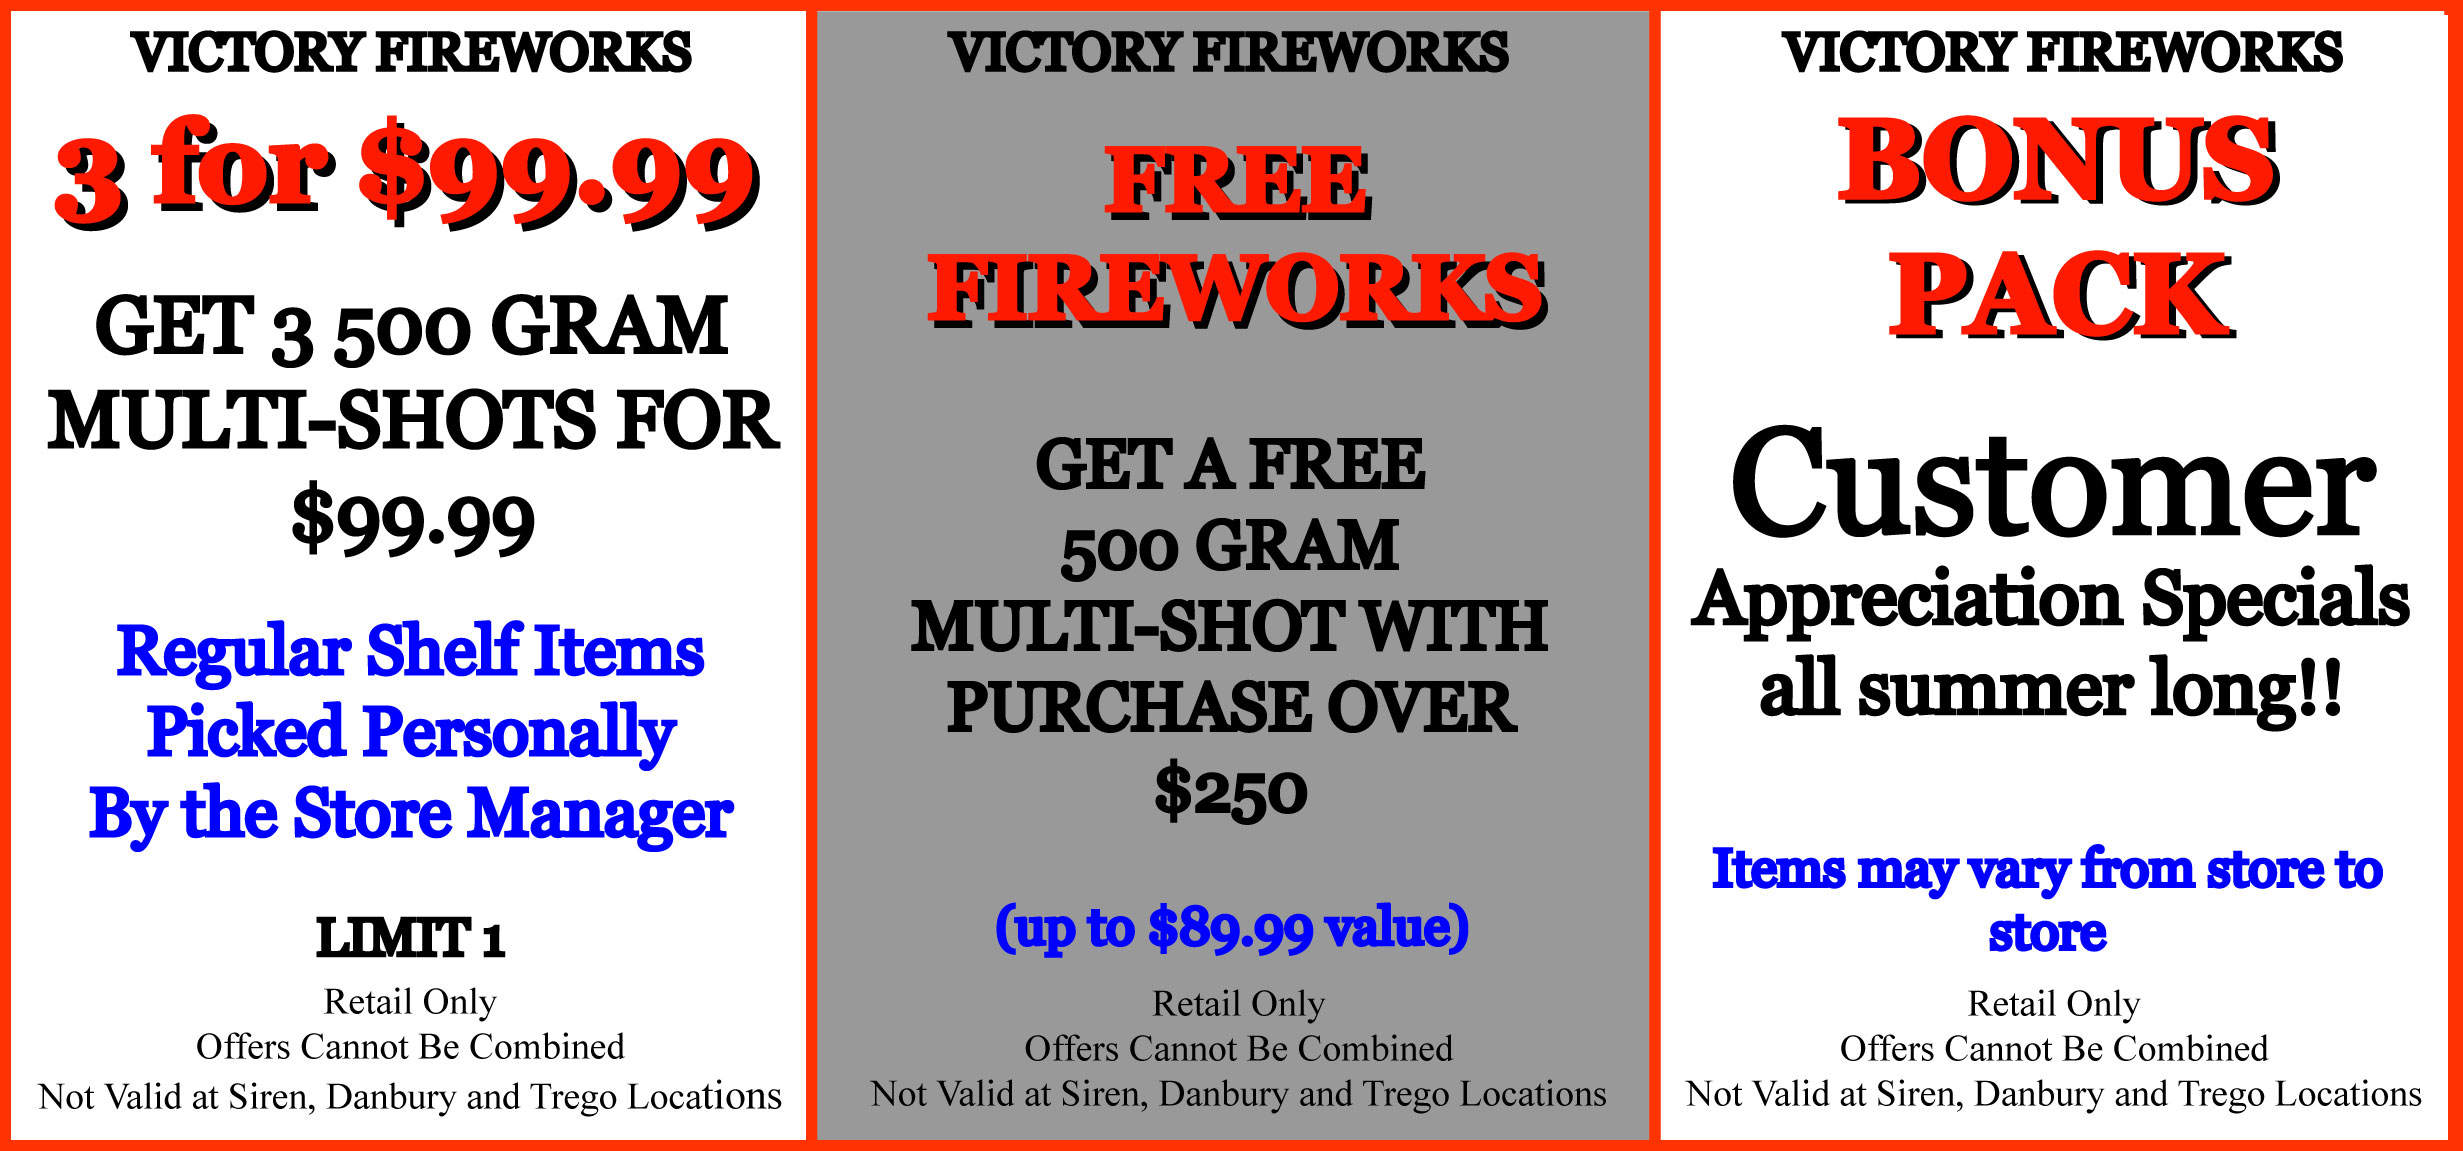 Fireworks Coupons